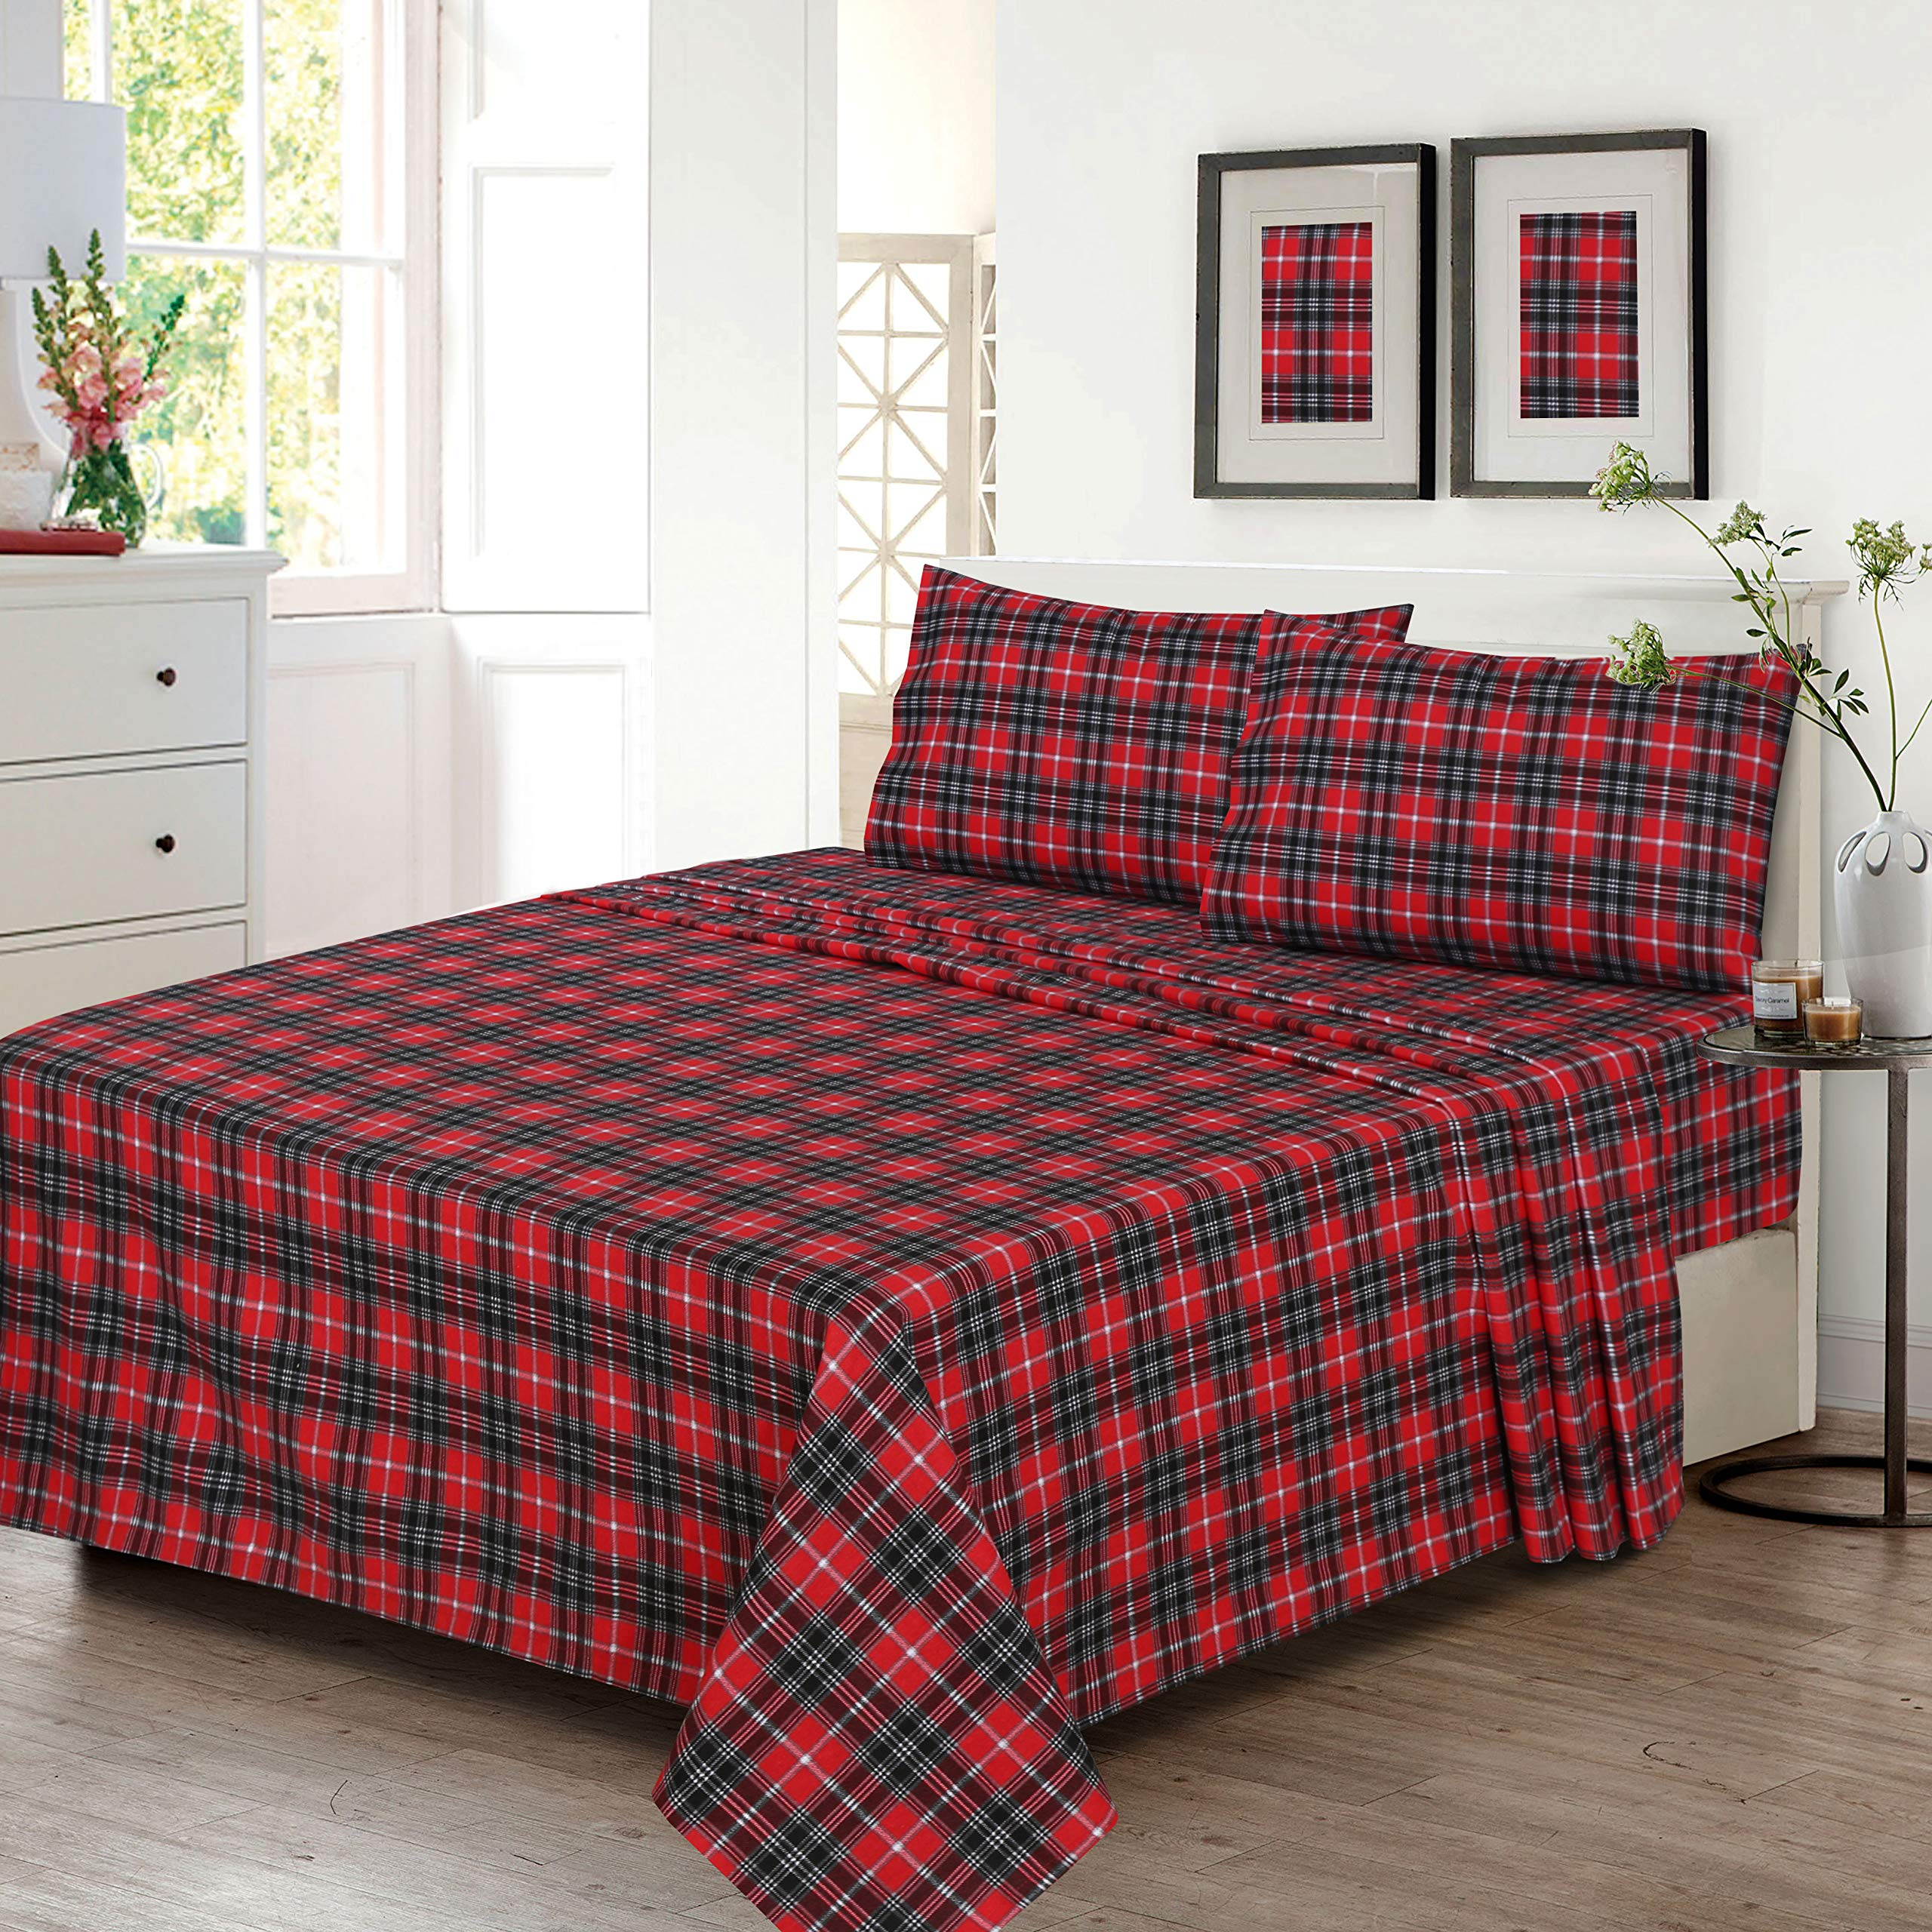 Amazon Com Ruvanti 100 Cotton 4 Pcs Flannel Sheets Cal King Deep Pocket Warm Super Soft Breathable California King Size Flannel Bed Sheets Set Include Flat Sheet Fitted Sheet 2 Pillow Cases Red Christmas